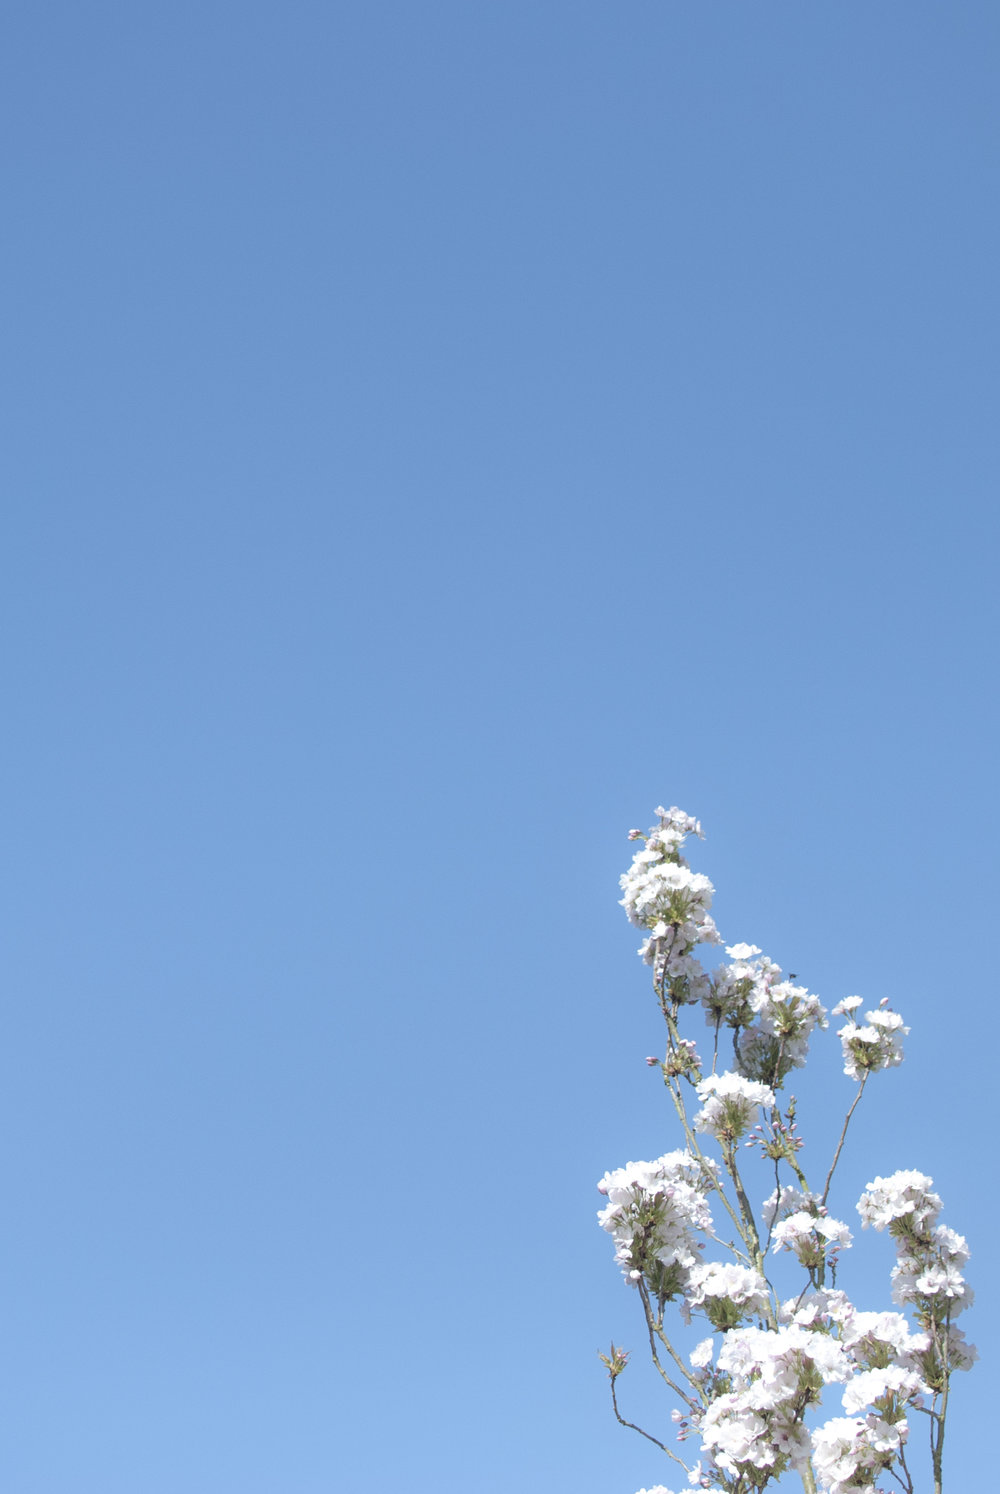 Soft blue skies and white blossom in Peckham